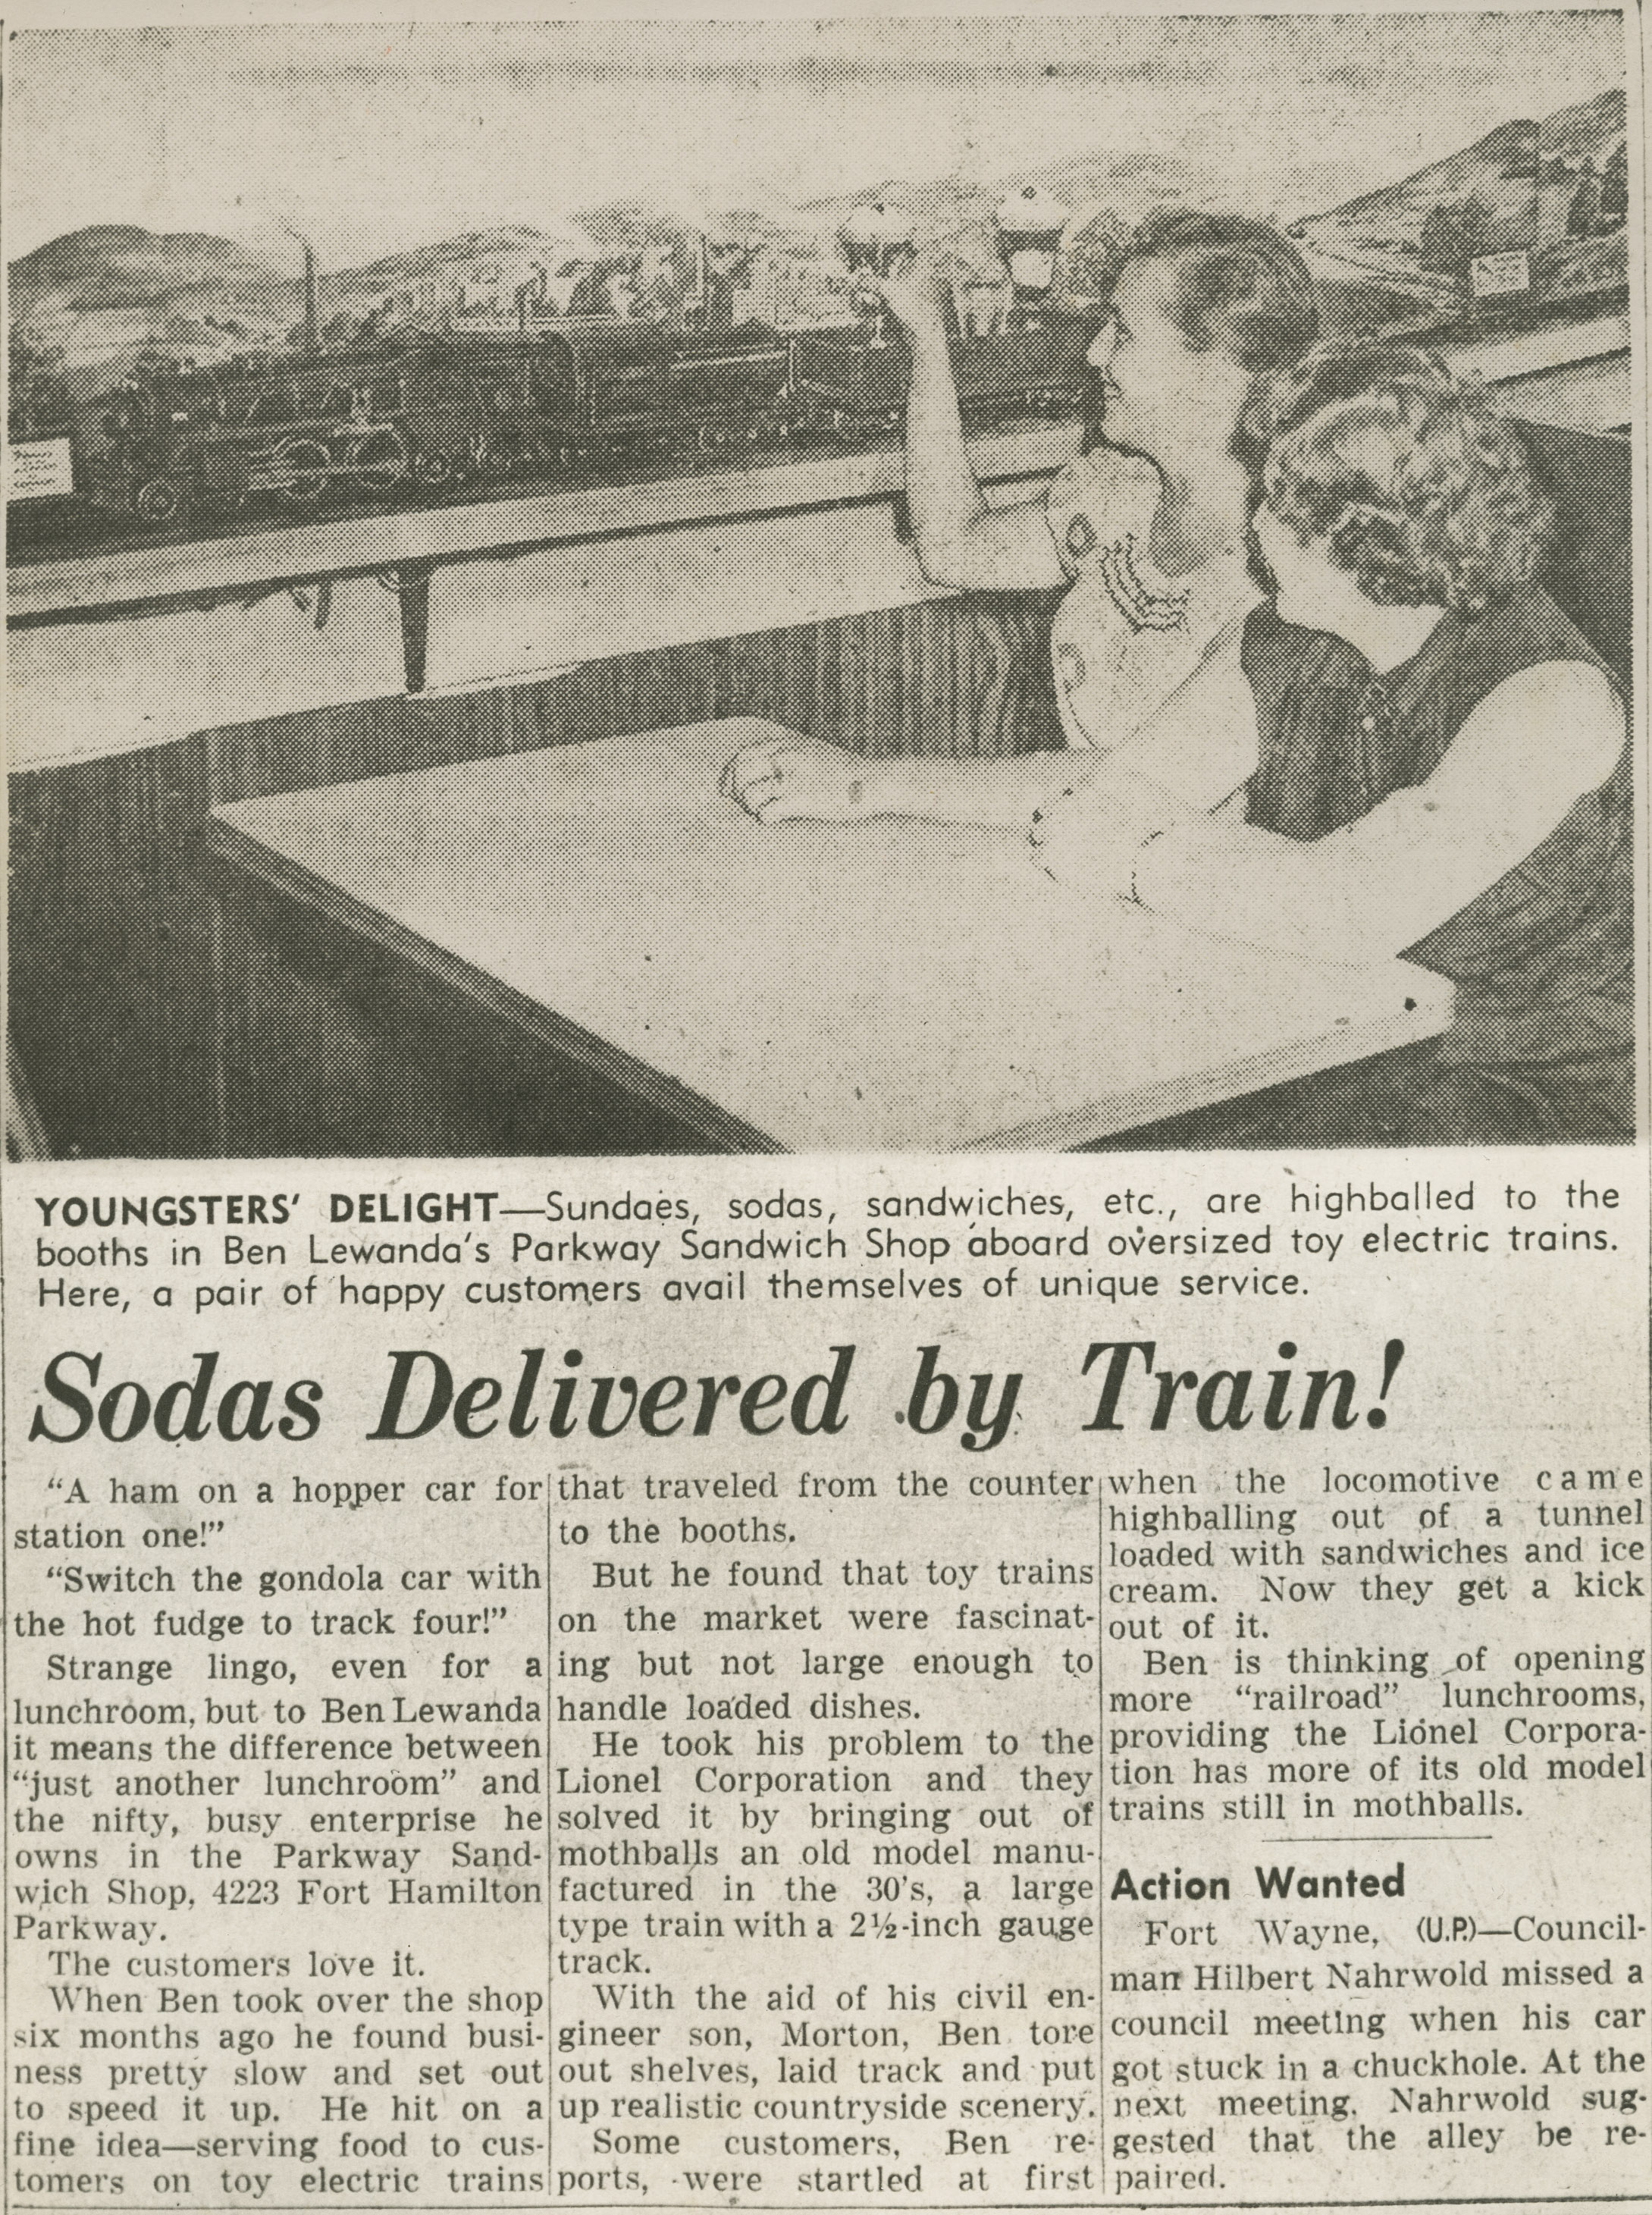 Sodas Delivered by Train!